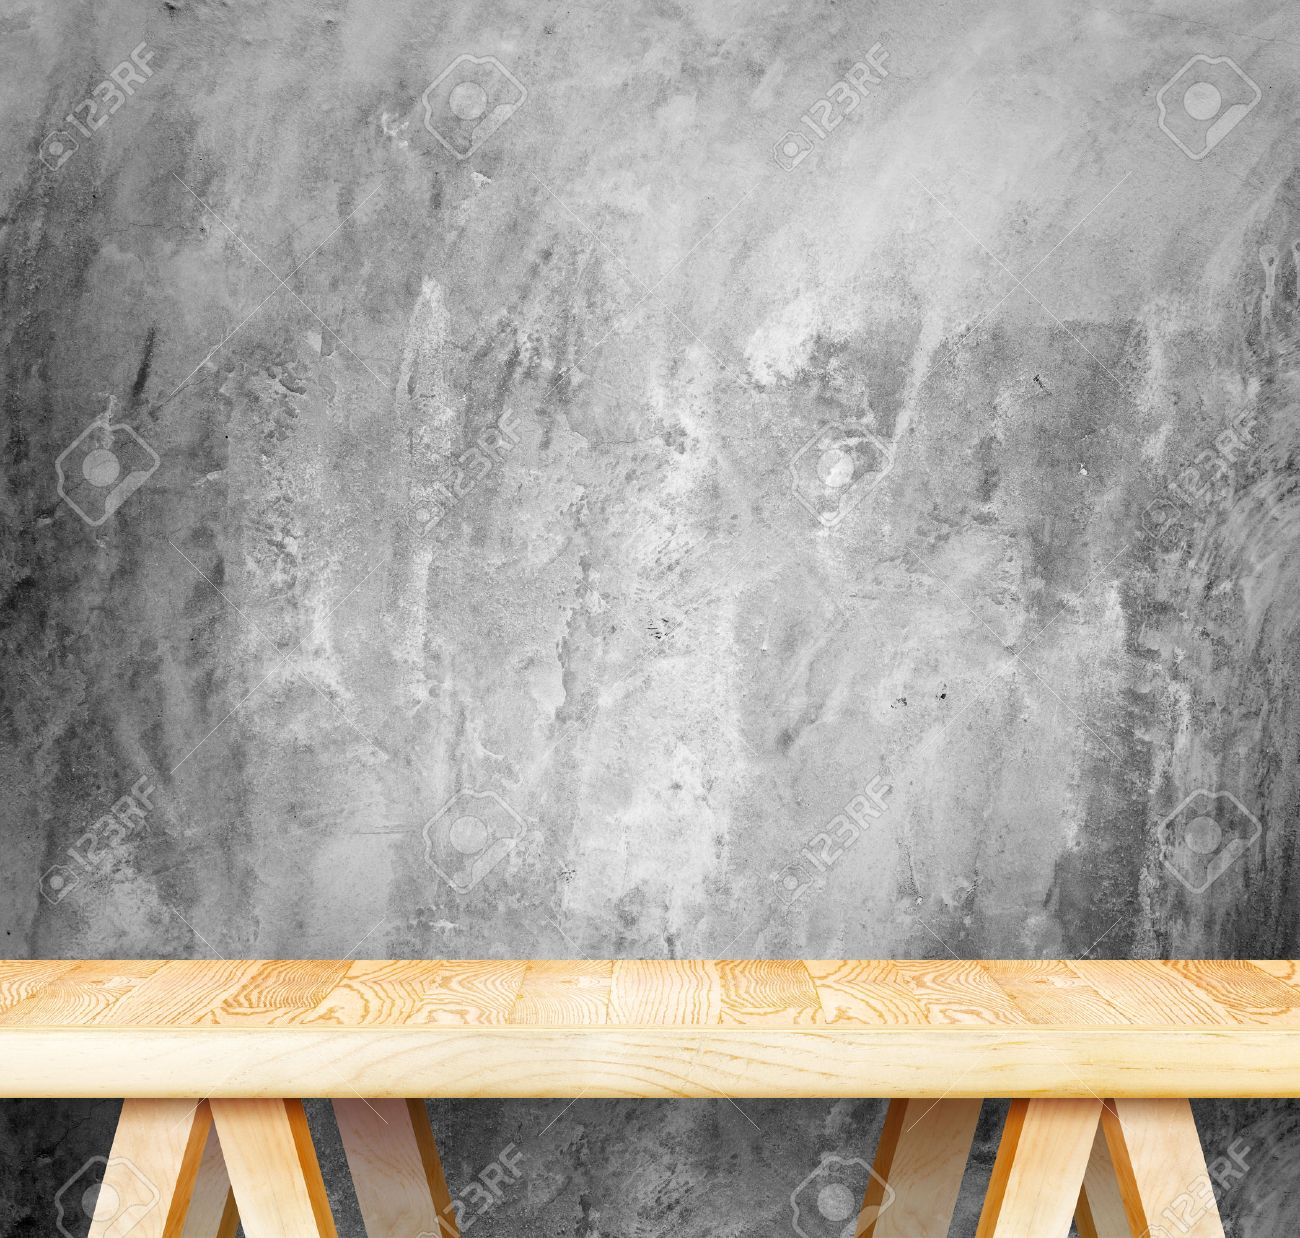 Plain wood table with hipster brick wall background stock photo - Empty Wood Modern Table And Grunge Concrete Wall In Background Mock Up Template For Display